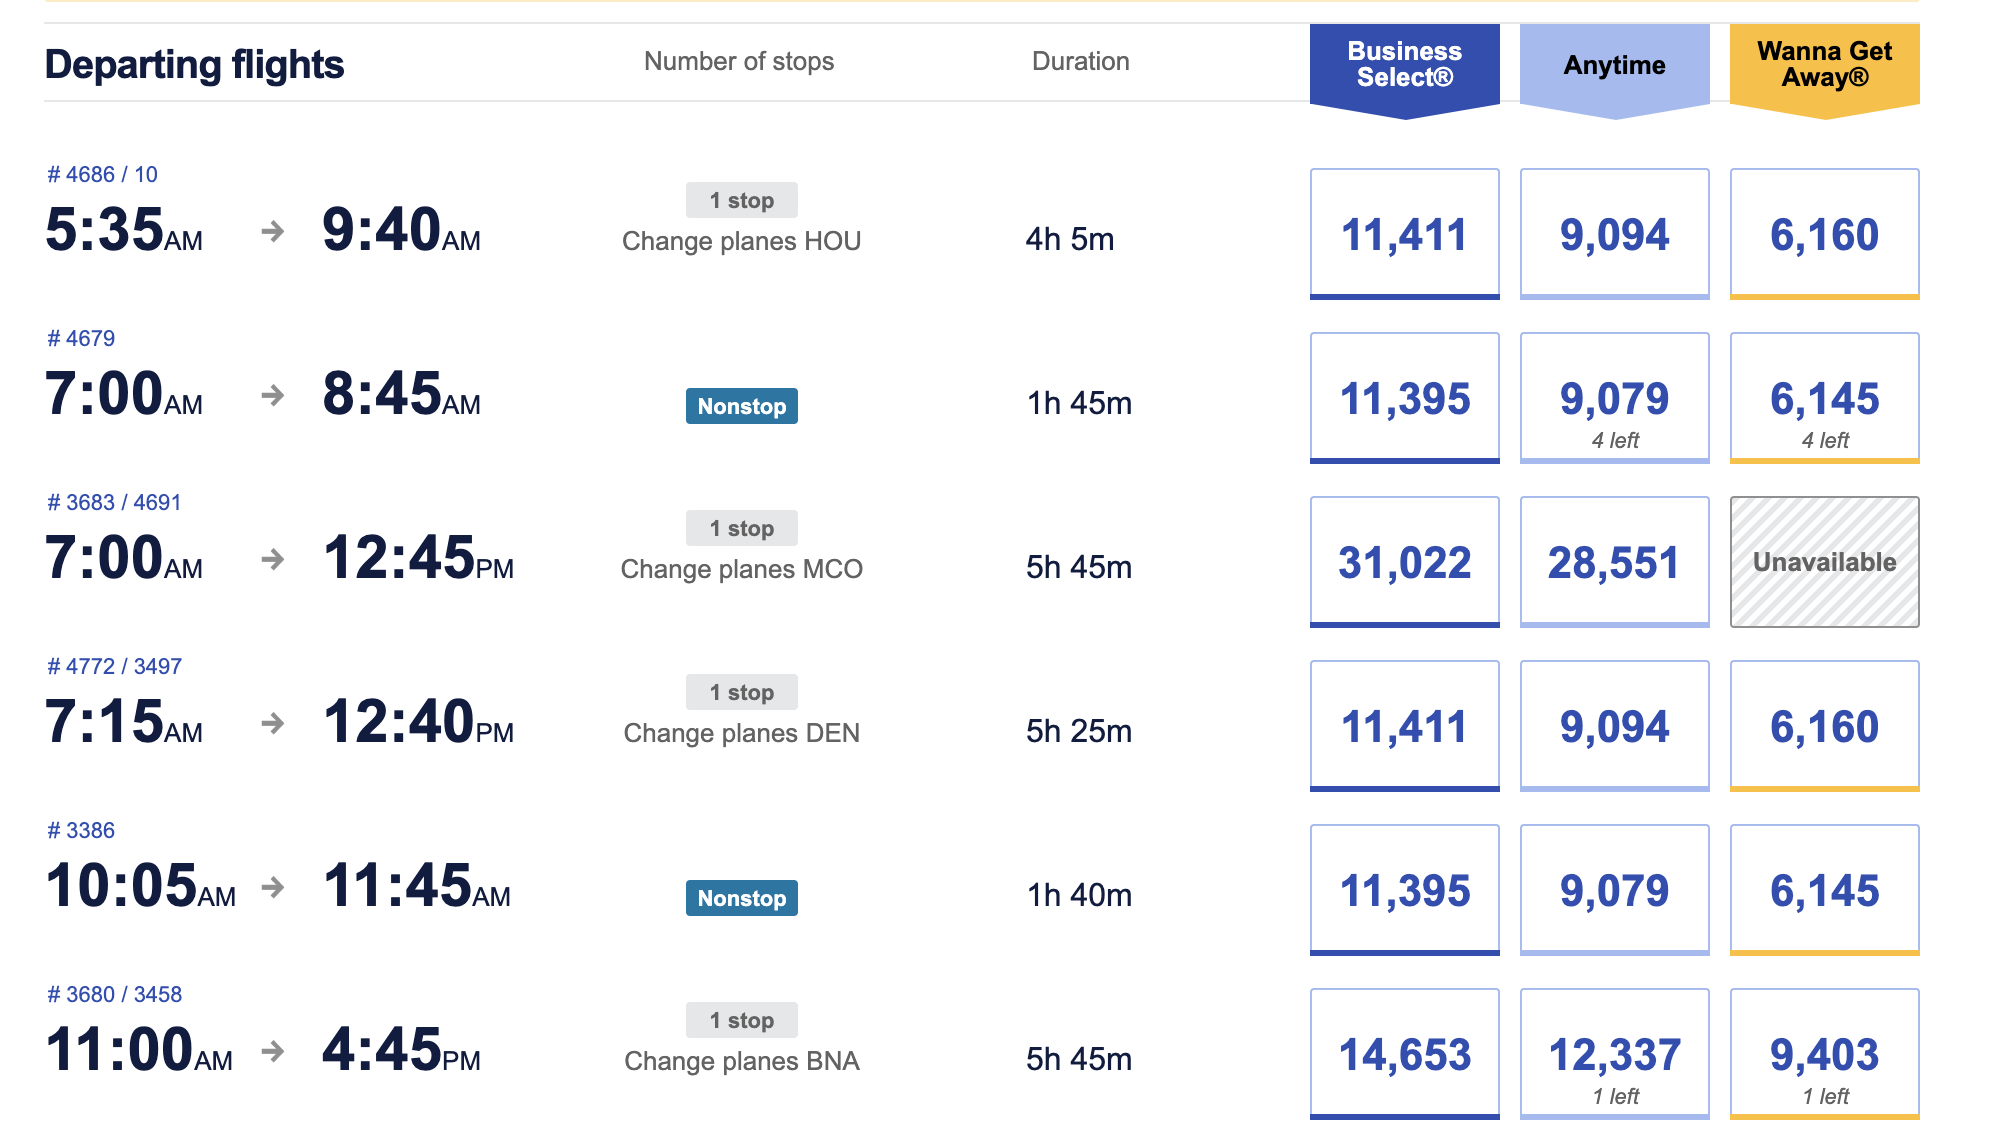 Award flight search results showing the required number of Rapid Rewards points for flights between St. Louis and Dallas after the devaluation.